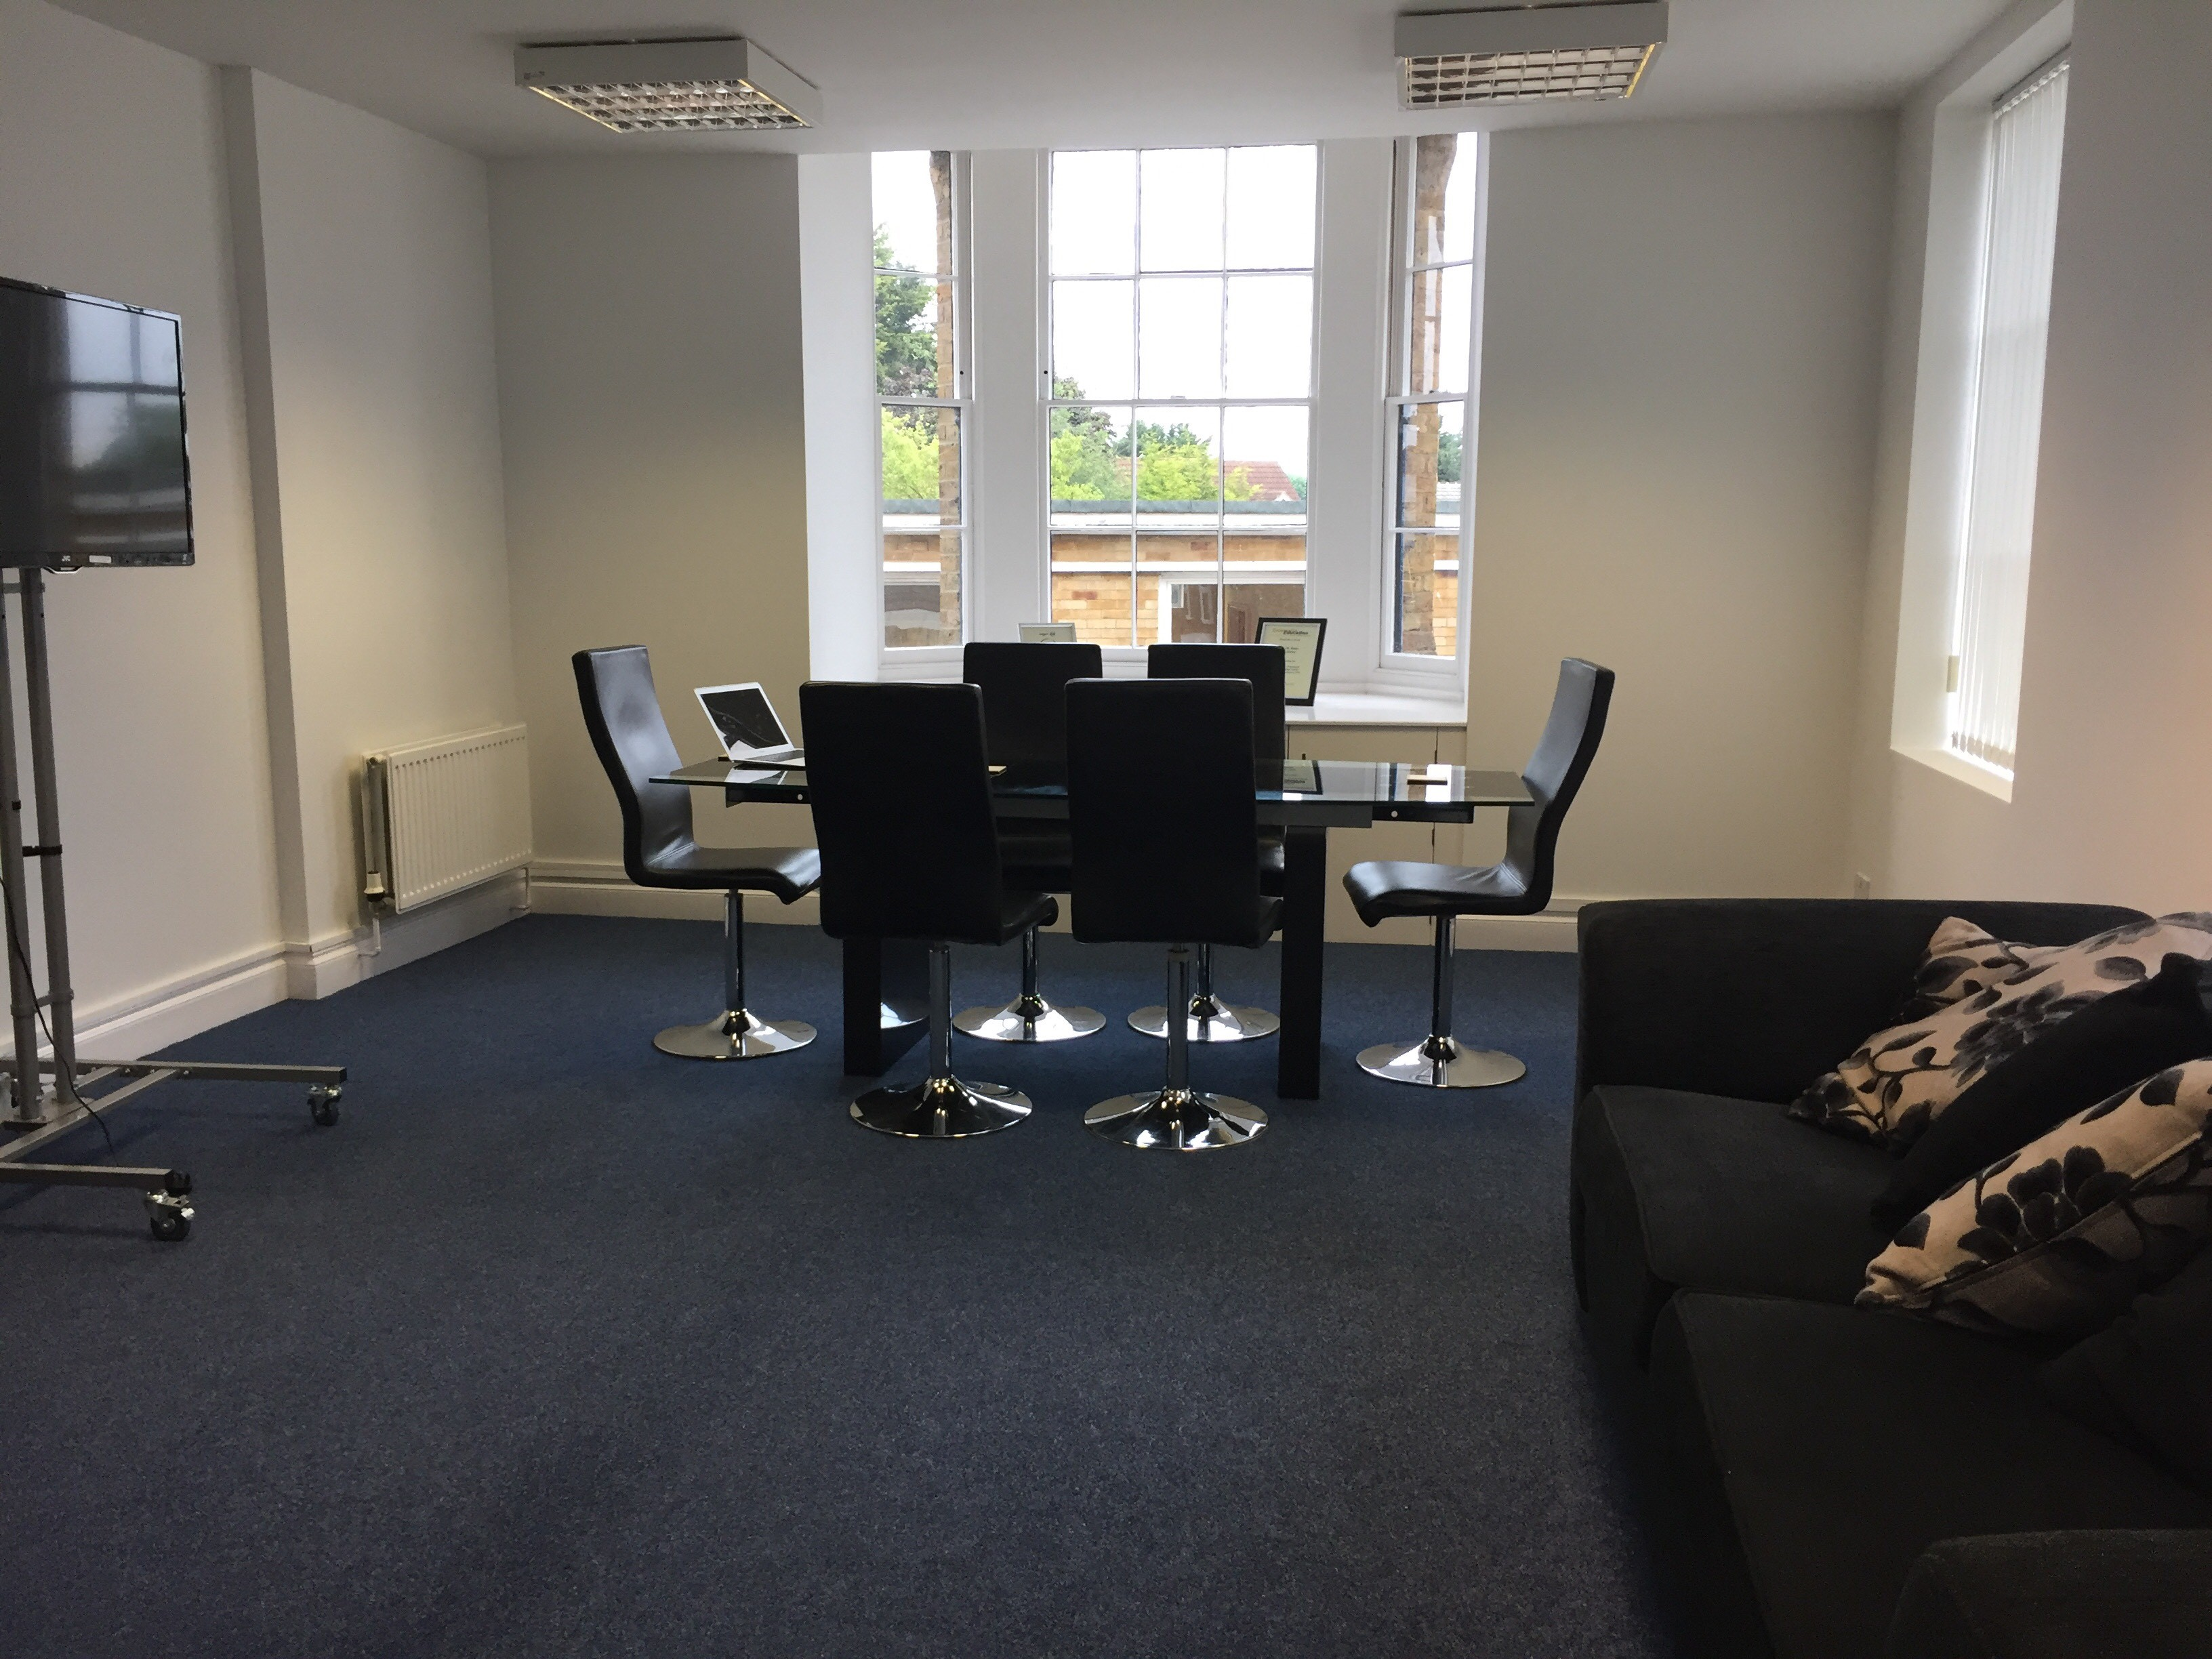 freelance seo essex meeting room